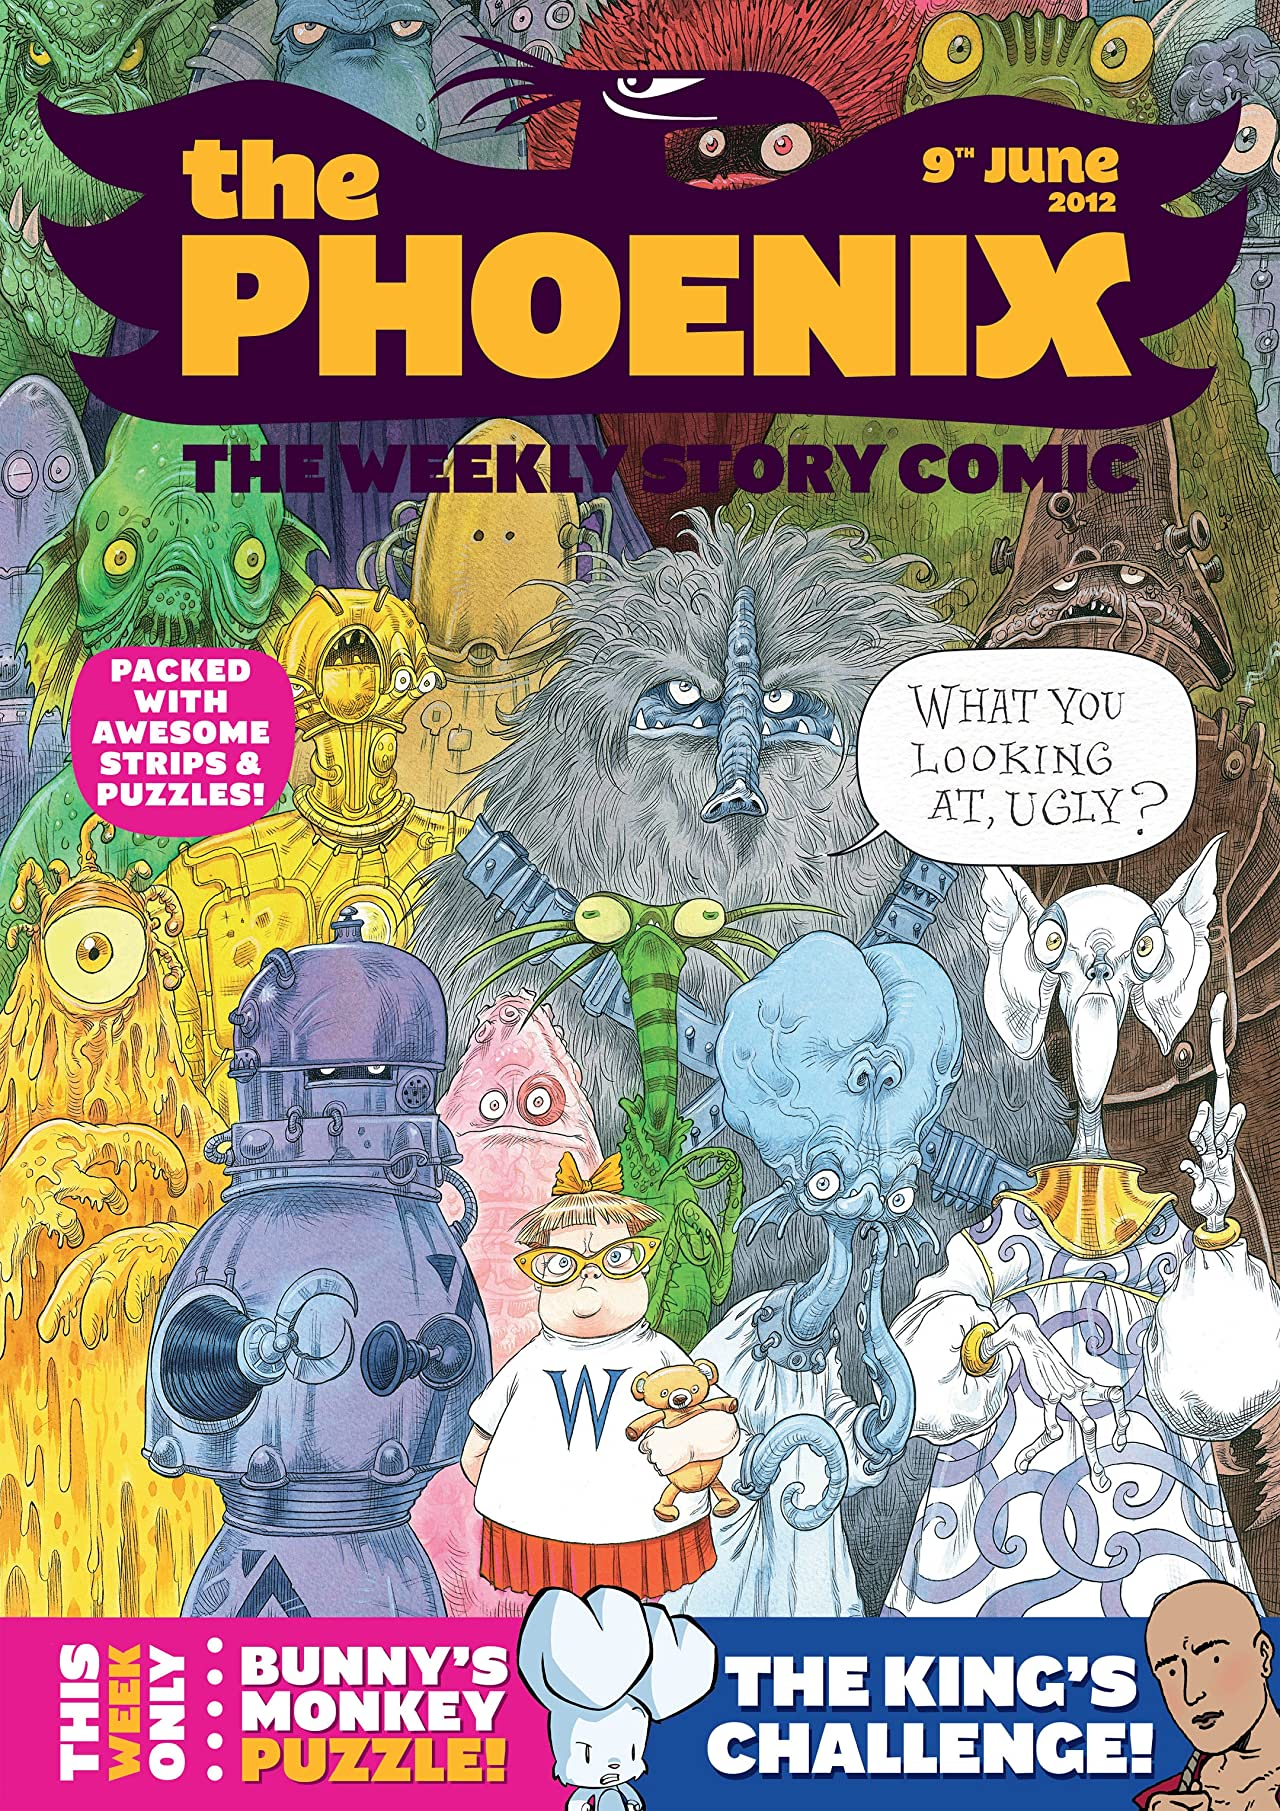 The Phoenix #23: The Weekly Story Comic